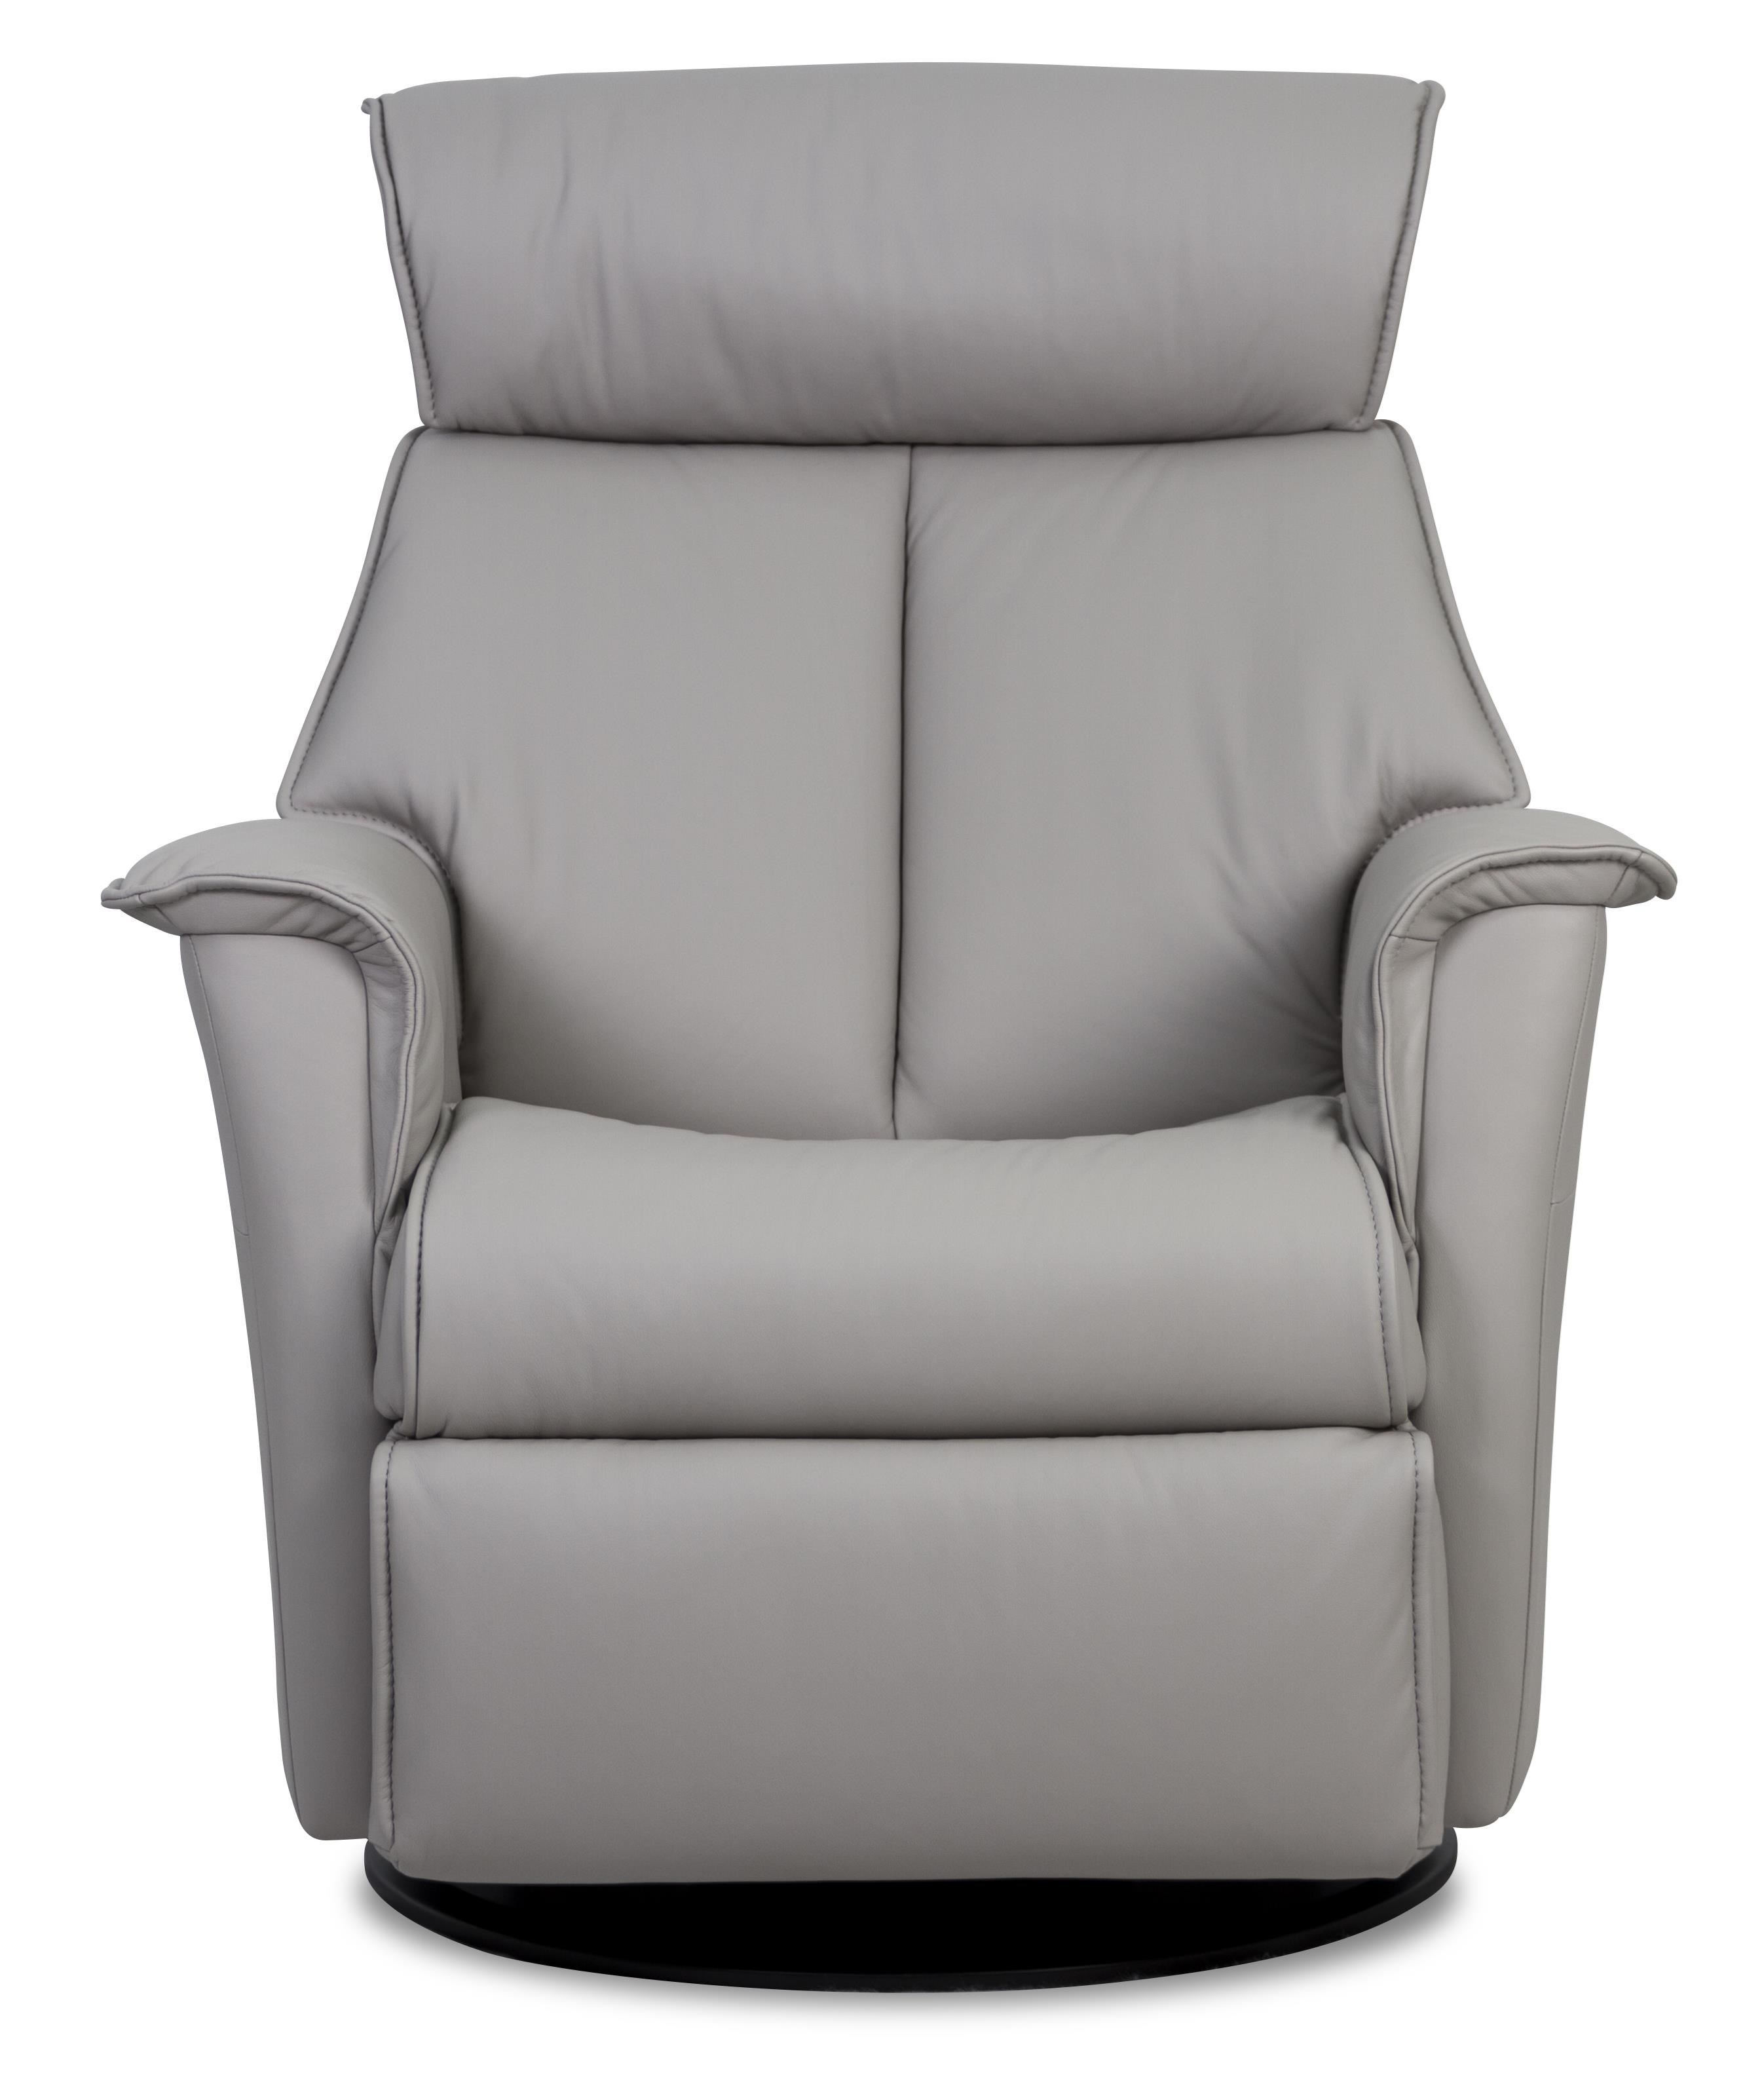 compact recliner chair. IMG Norway BOSSCompact Recliner Chair Compact A